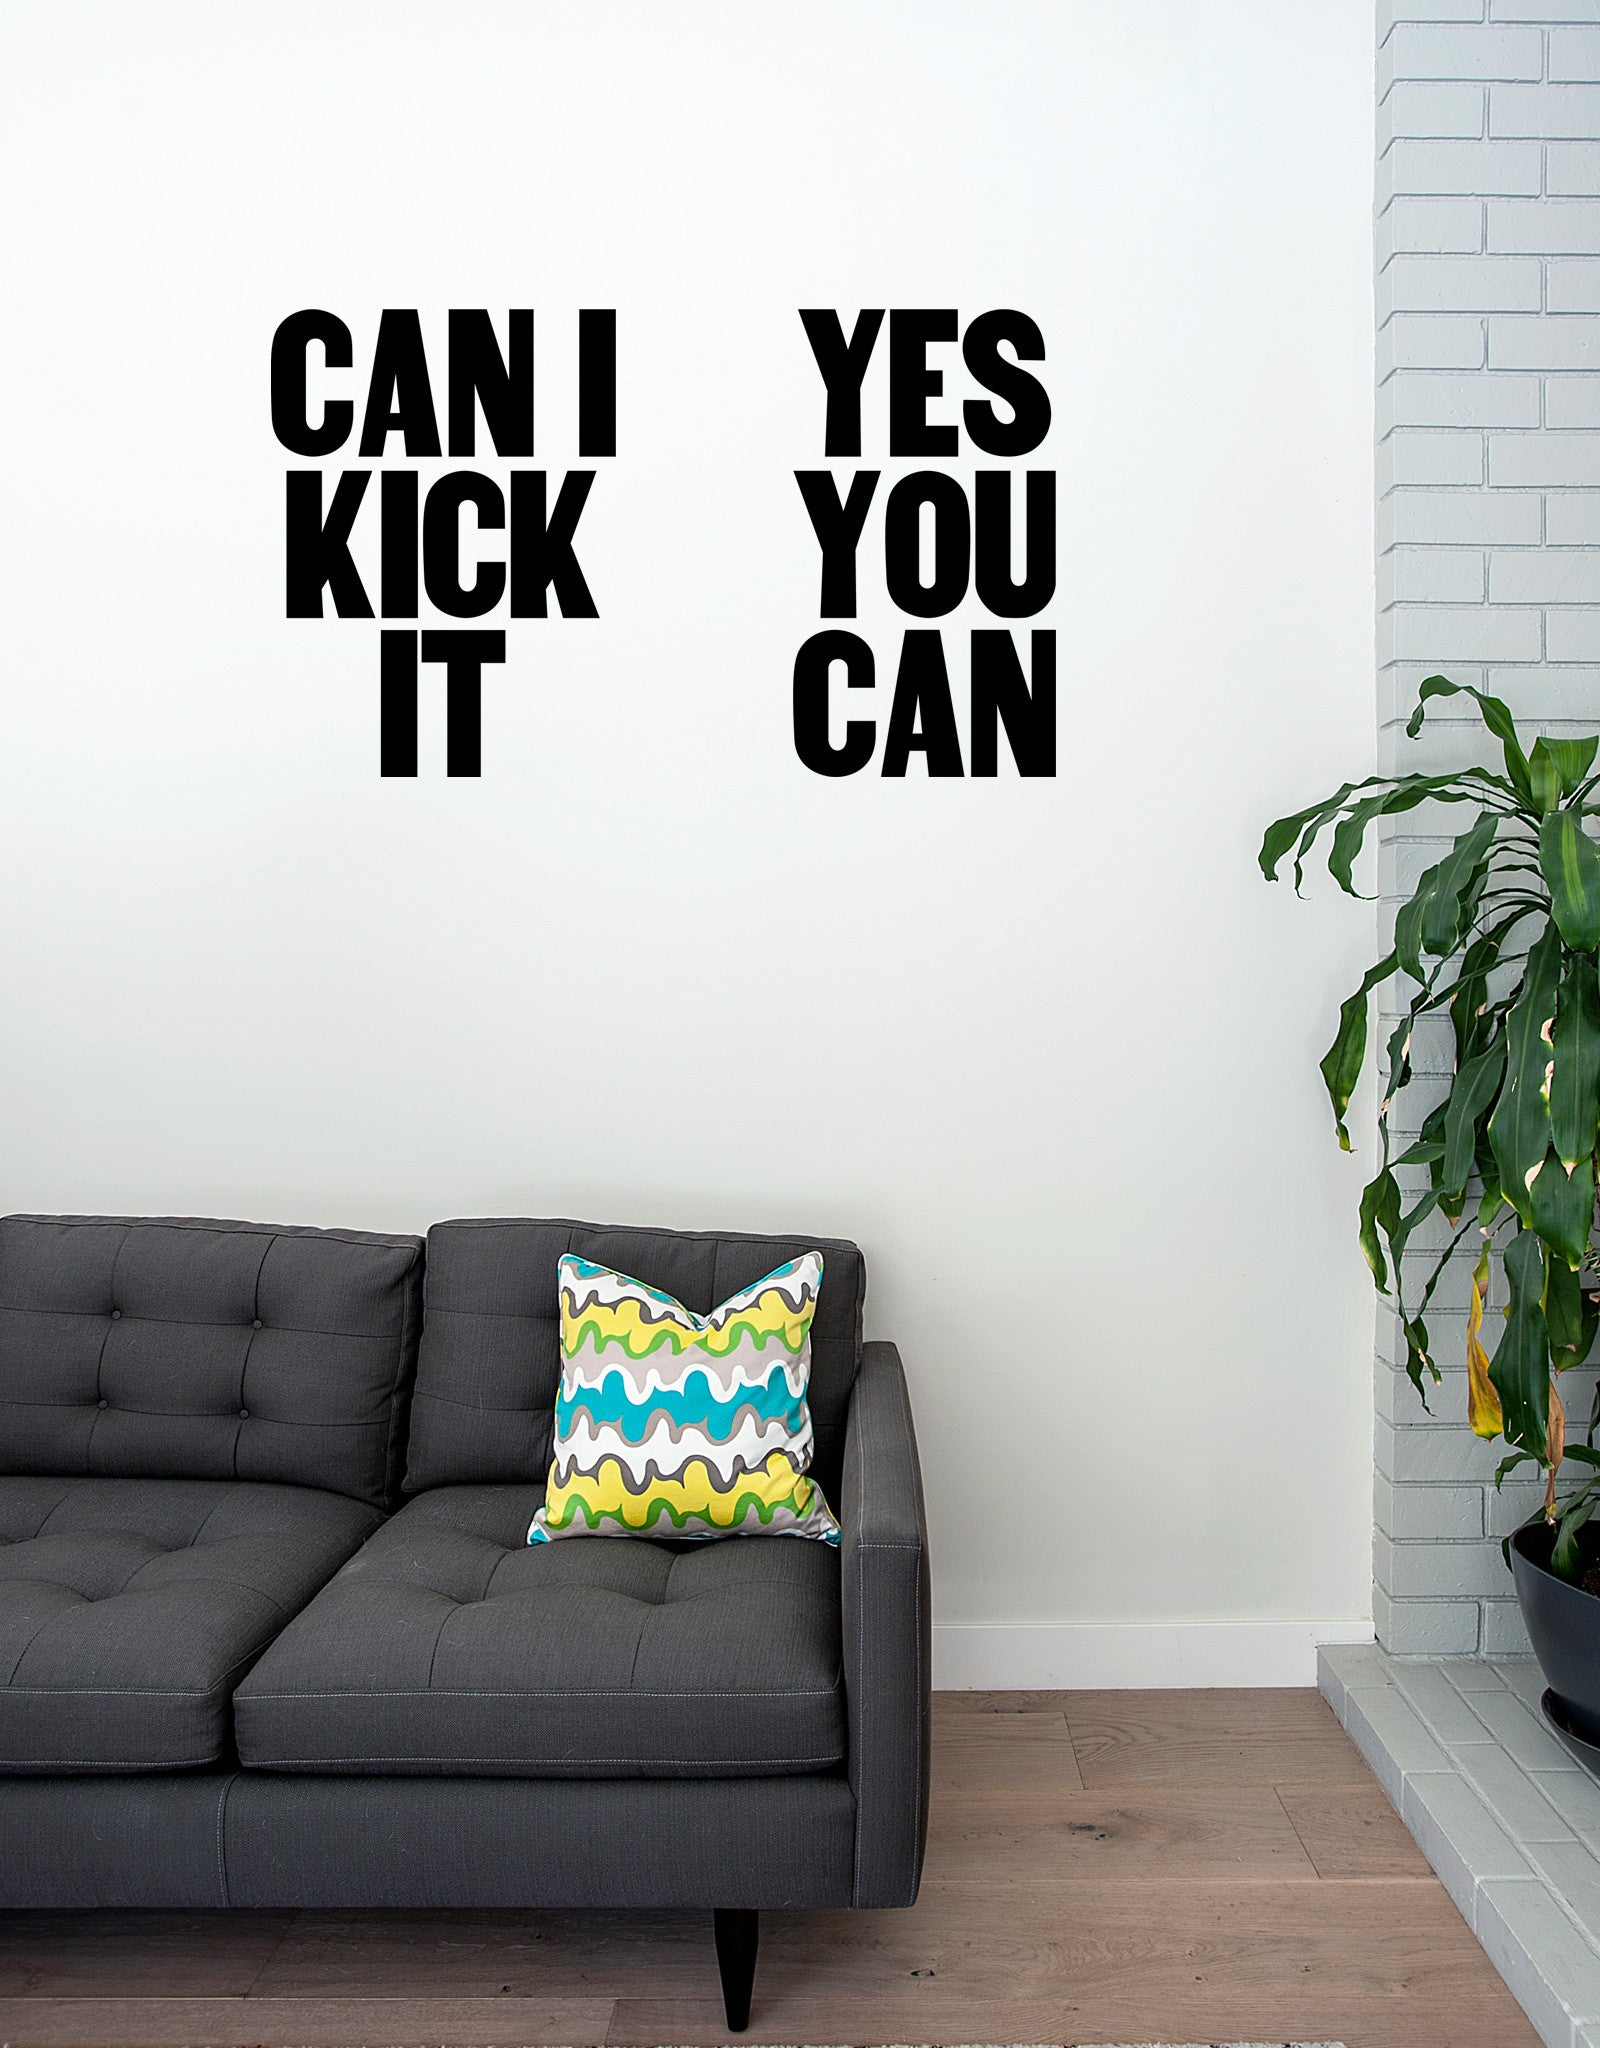 can i kick it yes you can wall decal adhesive vinyl decals blik